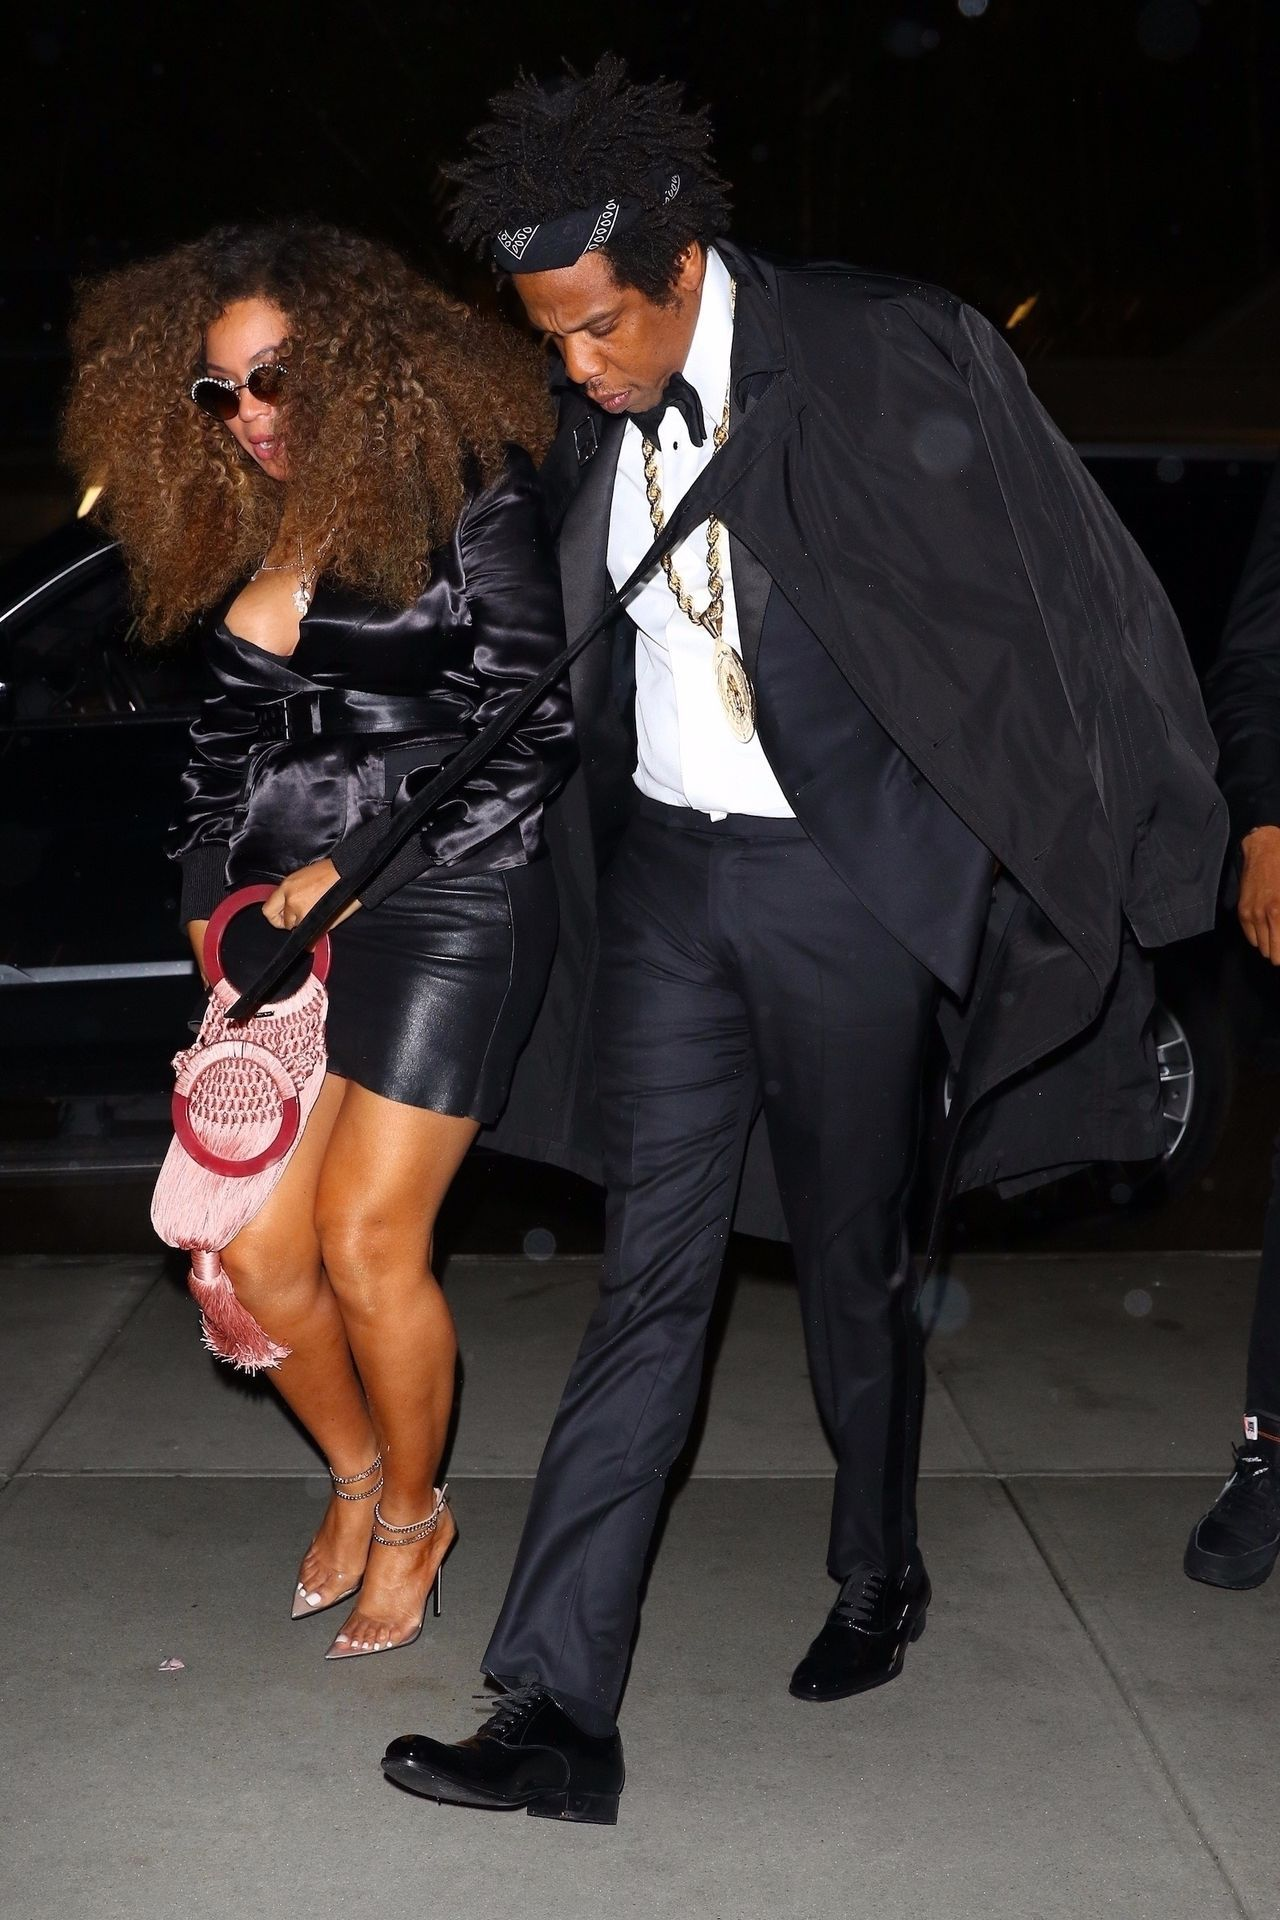 *EXCLUSIVE* Beyonce & Jay Z spotted heading out for dinner after his performance at Webster Hall